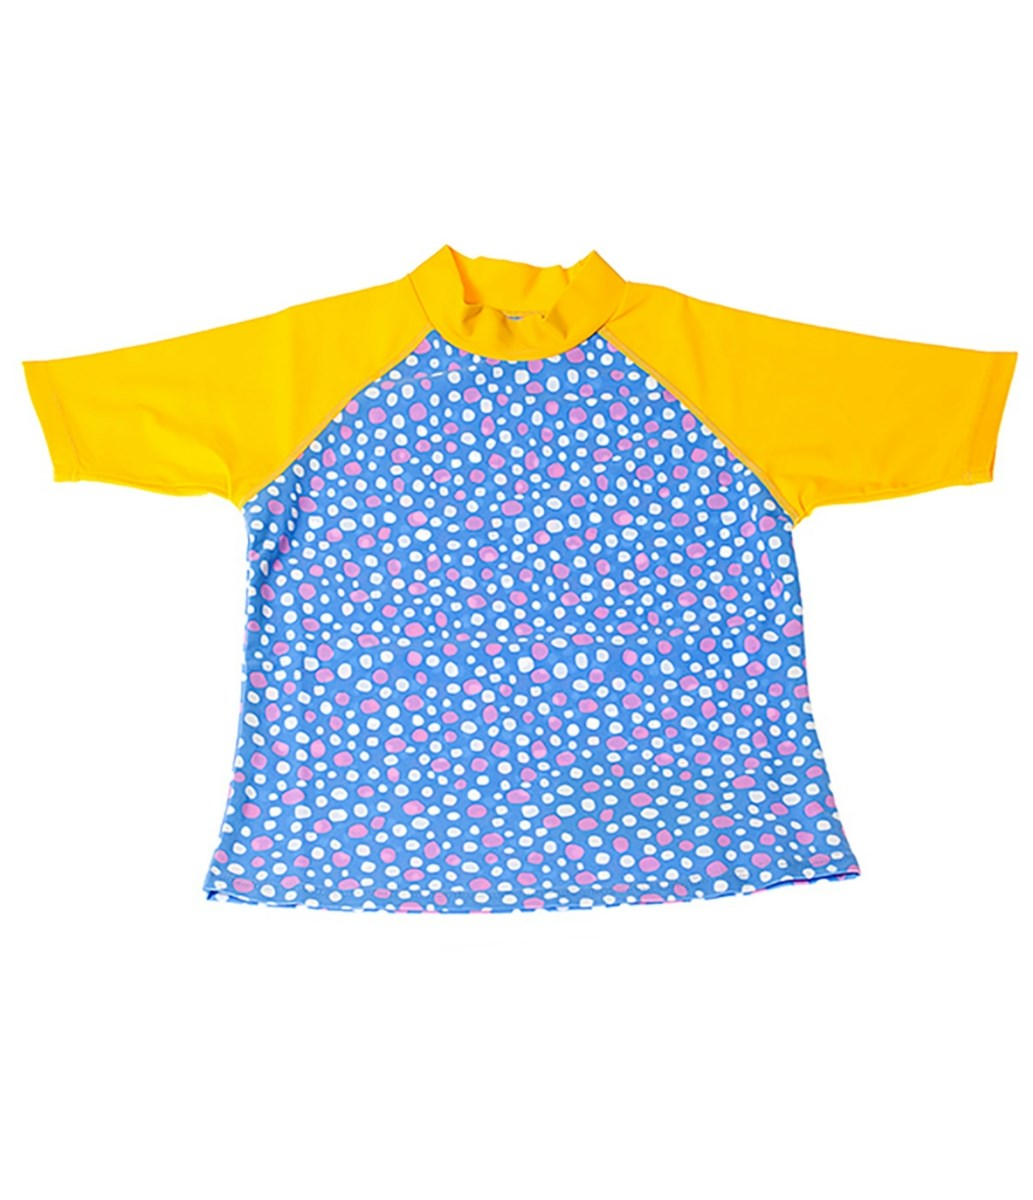 Rockley Cove UPF50+ Modern Dot Rash Vest